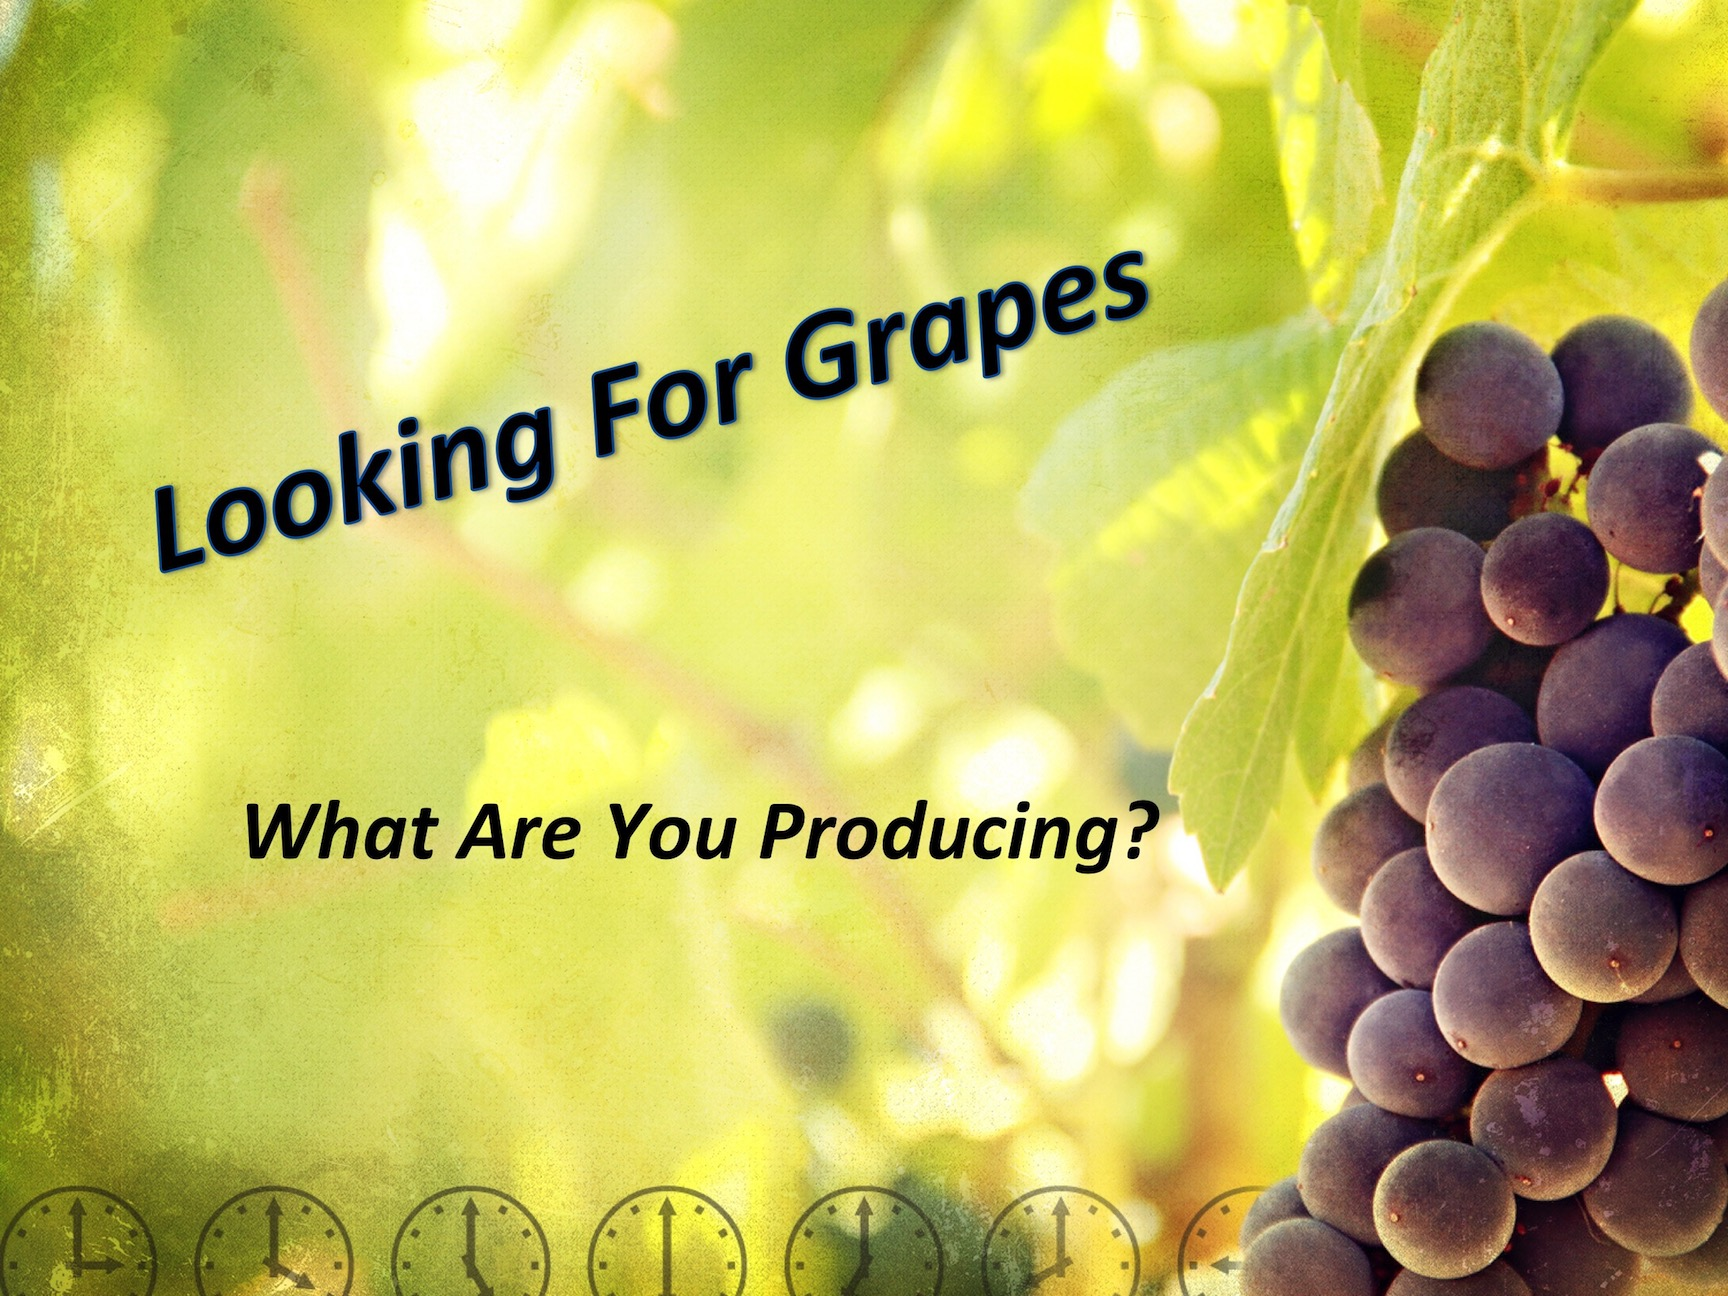 Looking For Grapes P3 6/26/2017 11 AM